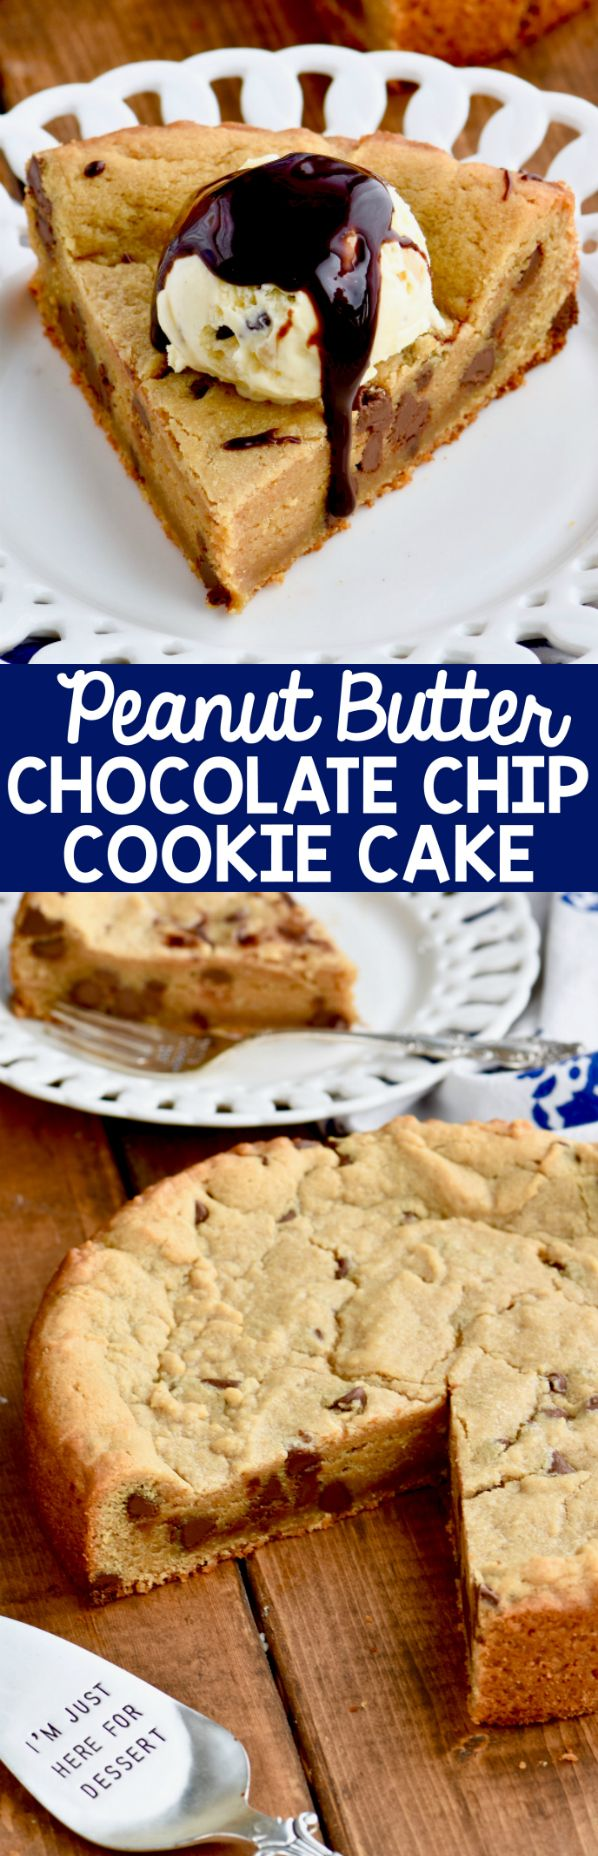 Peanut Butter Chocolate Chip Cookie Cake